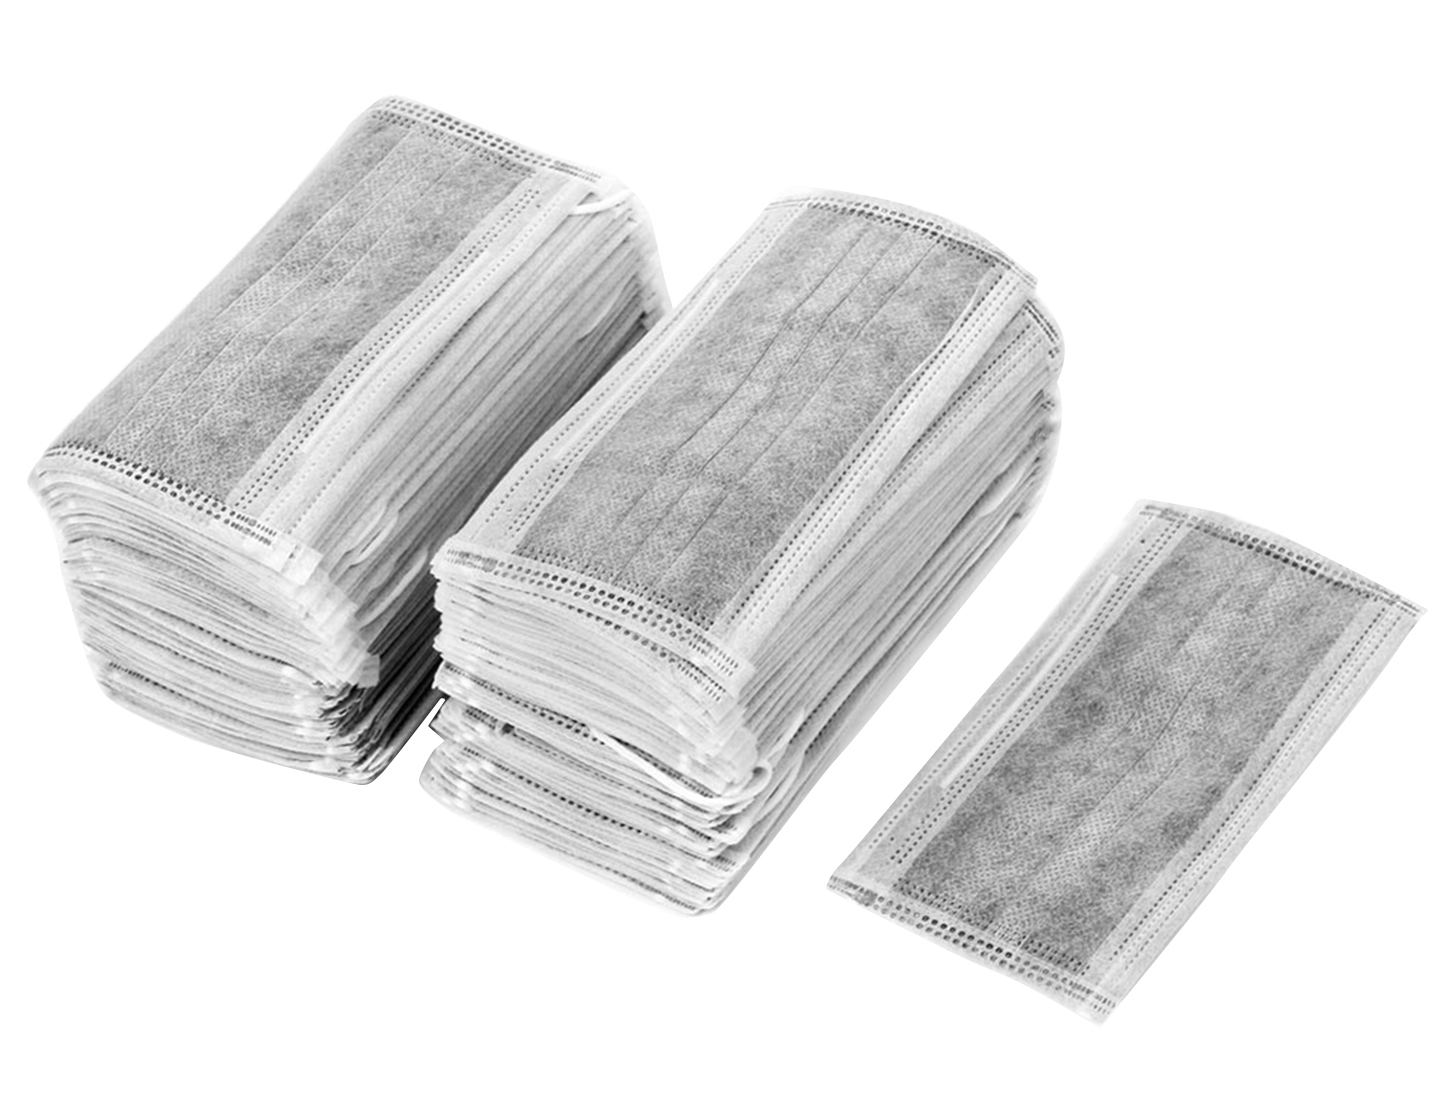 Unique Bargains 100 Pcs Stretchy Ear Loop Dustproof One-off Face Mask Gray by